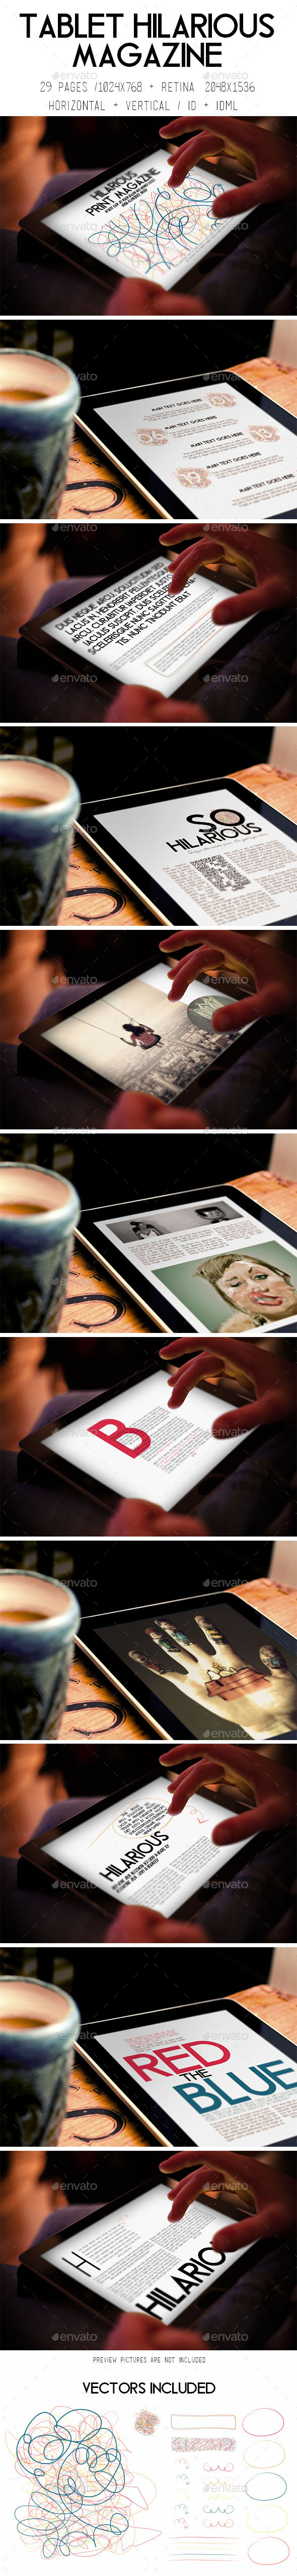 iPad & Tablet Hilarious Magazine